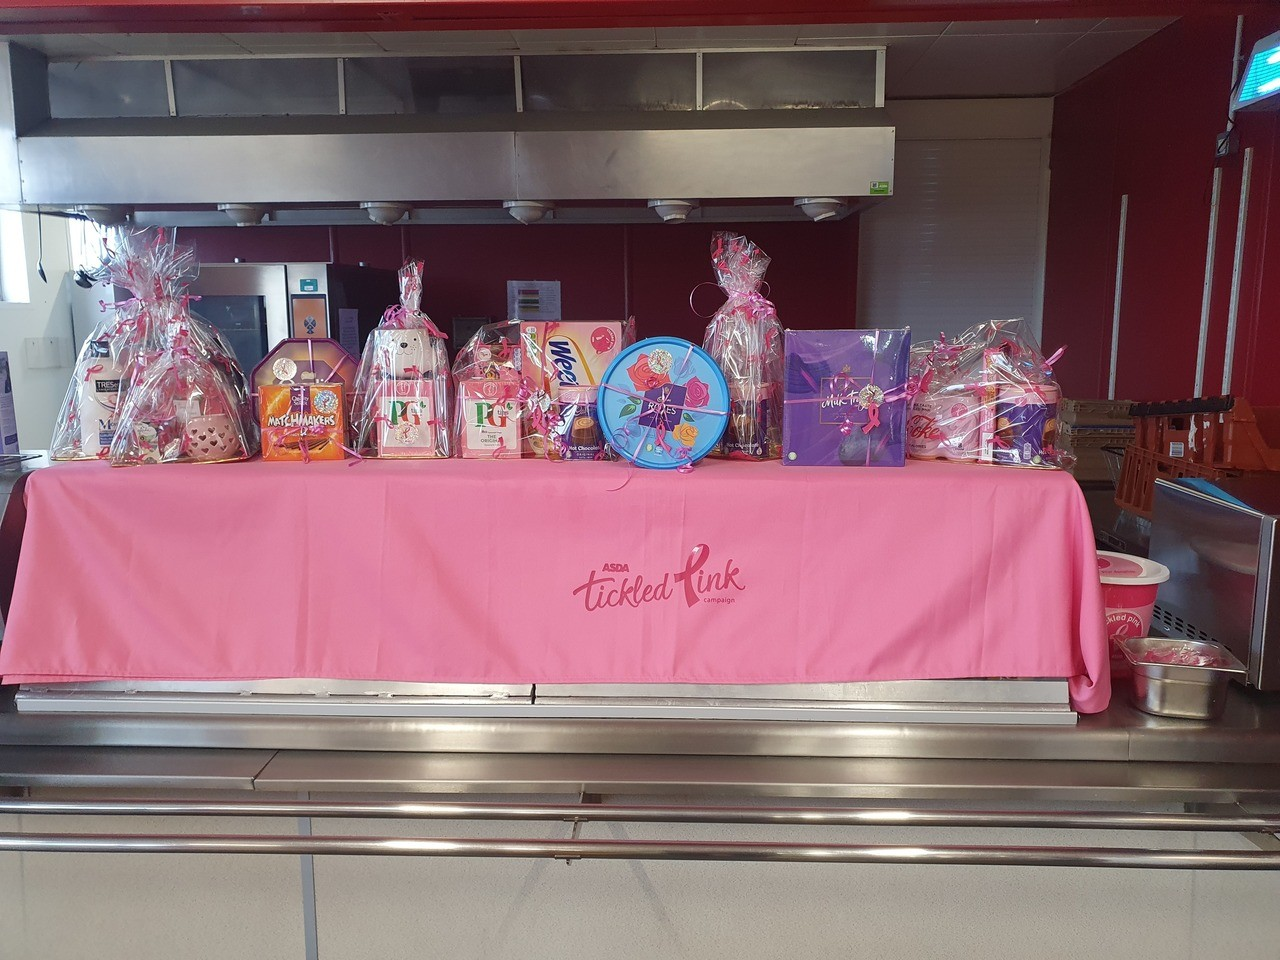 Tickled Pink raffle | Asda Brierley Hill